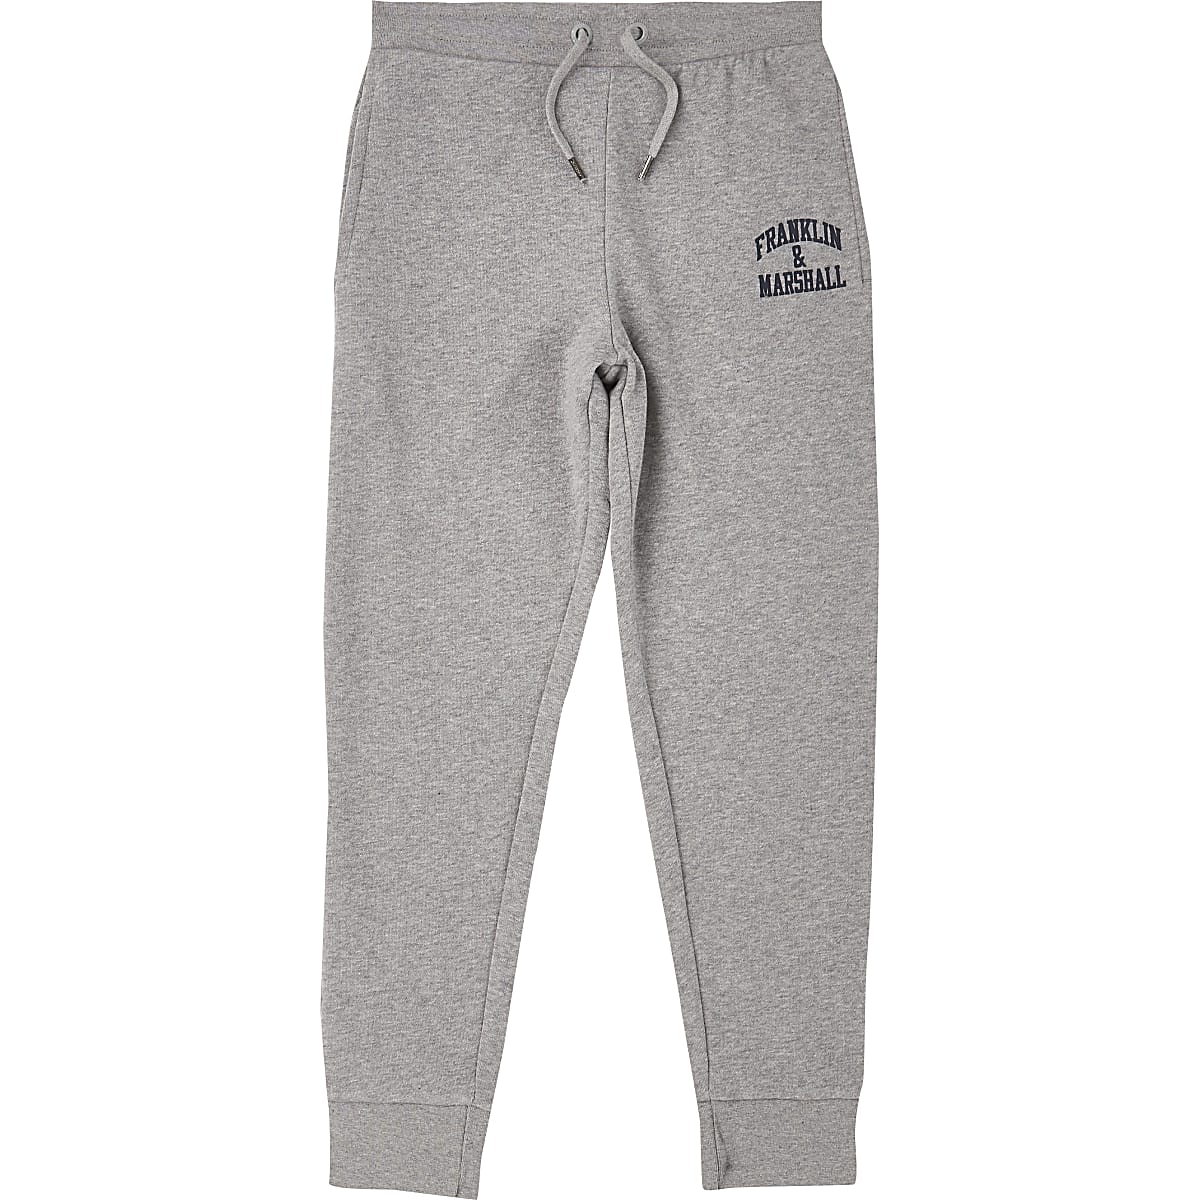 Boys Franklin & Marshall grey joggers